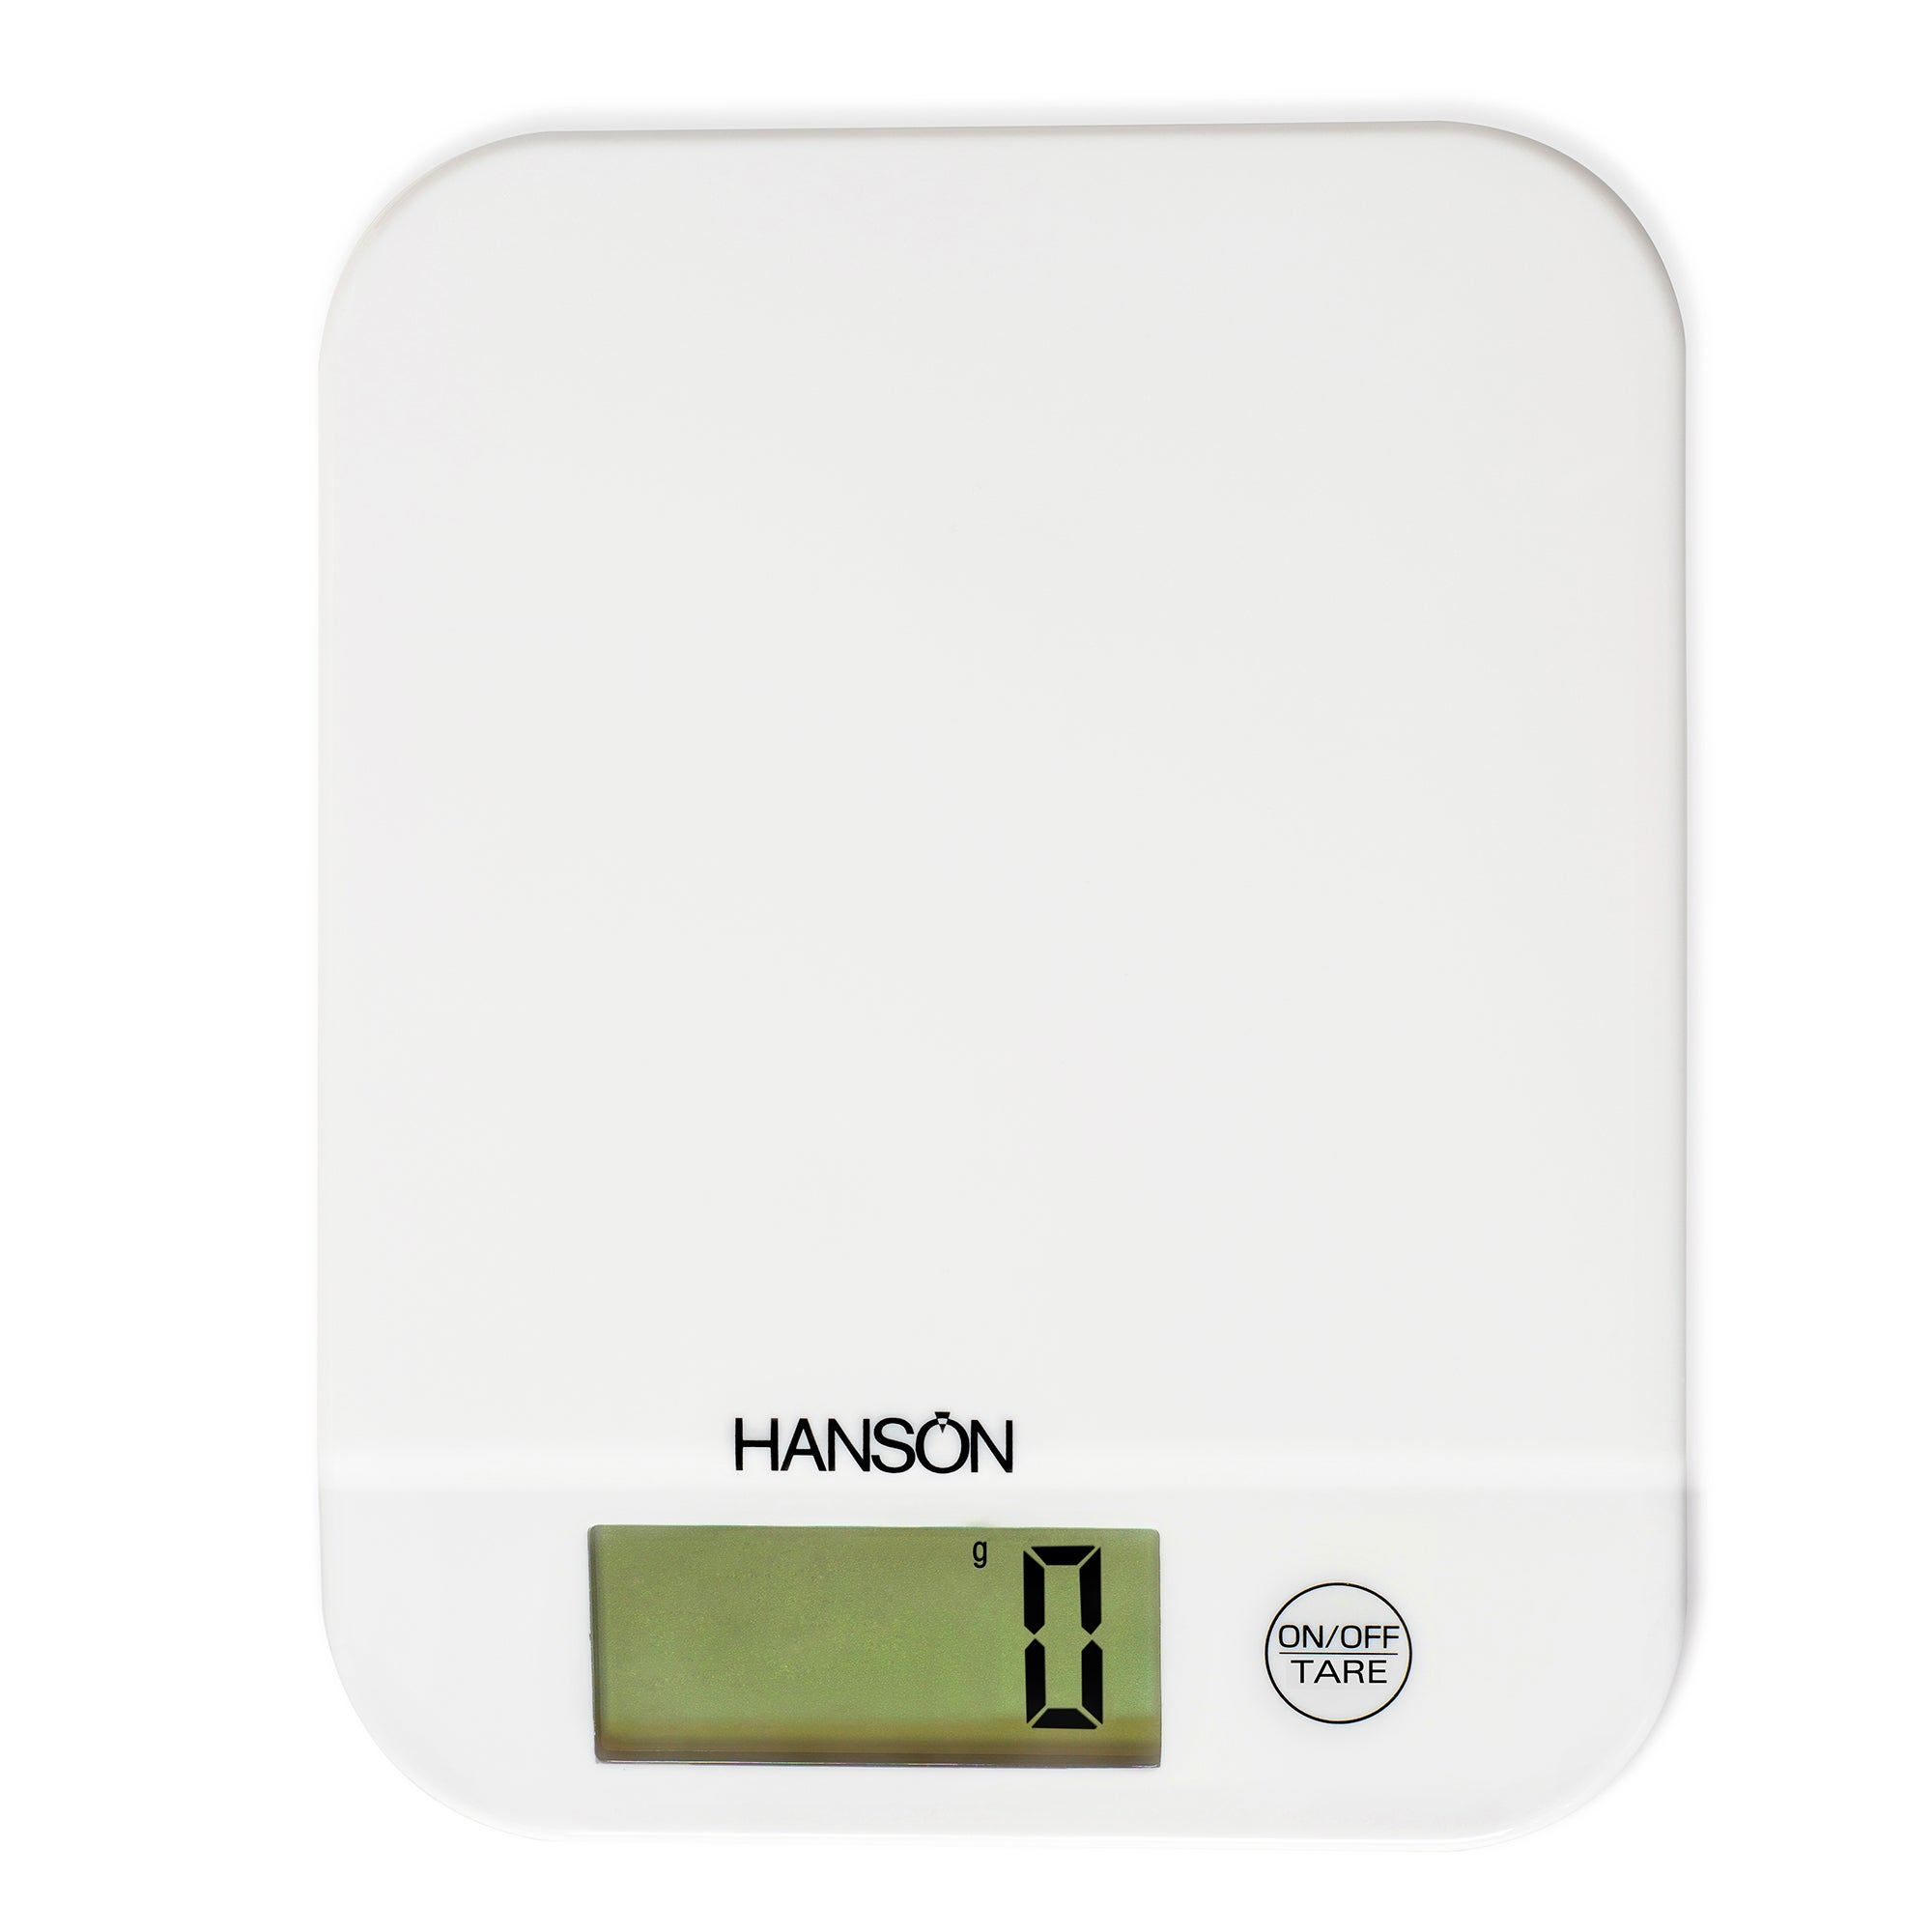 Hanson H1060 5kg Electronic Scales With Liquid Measurement